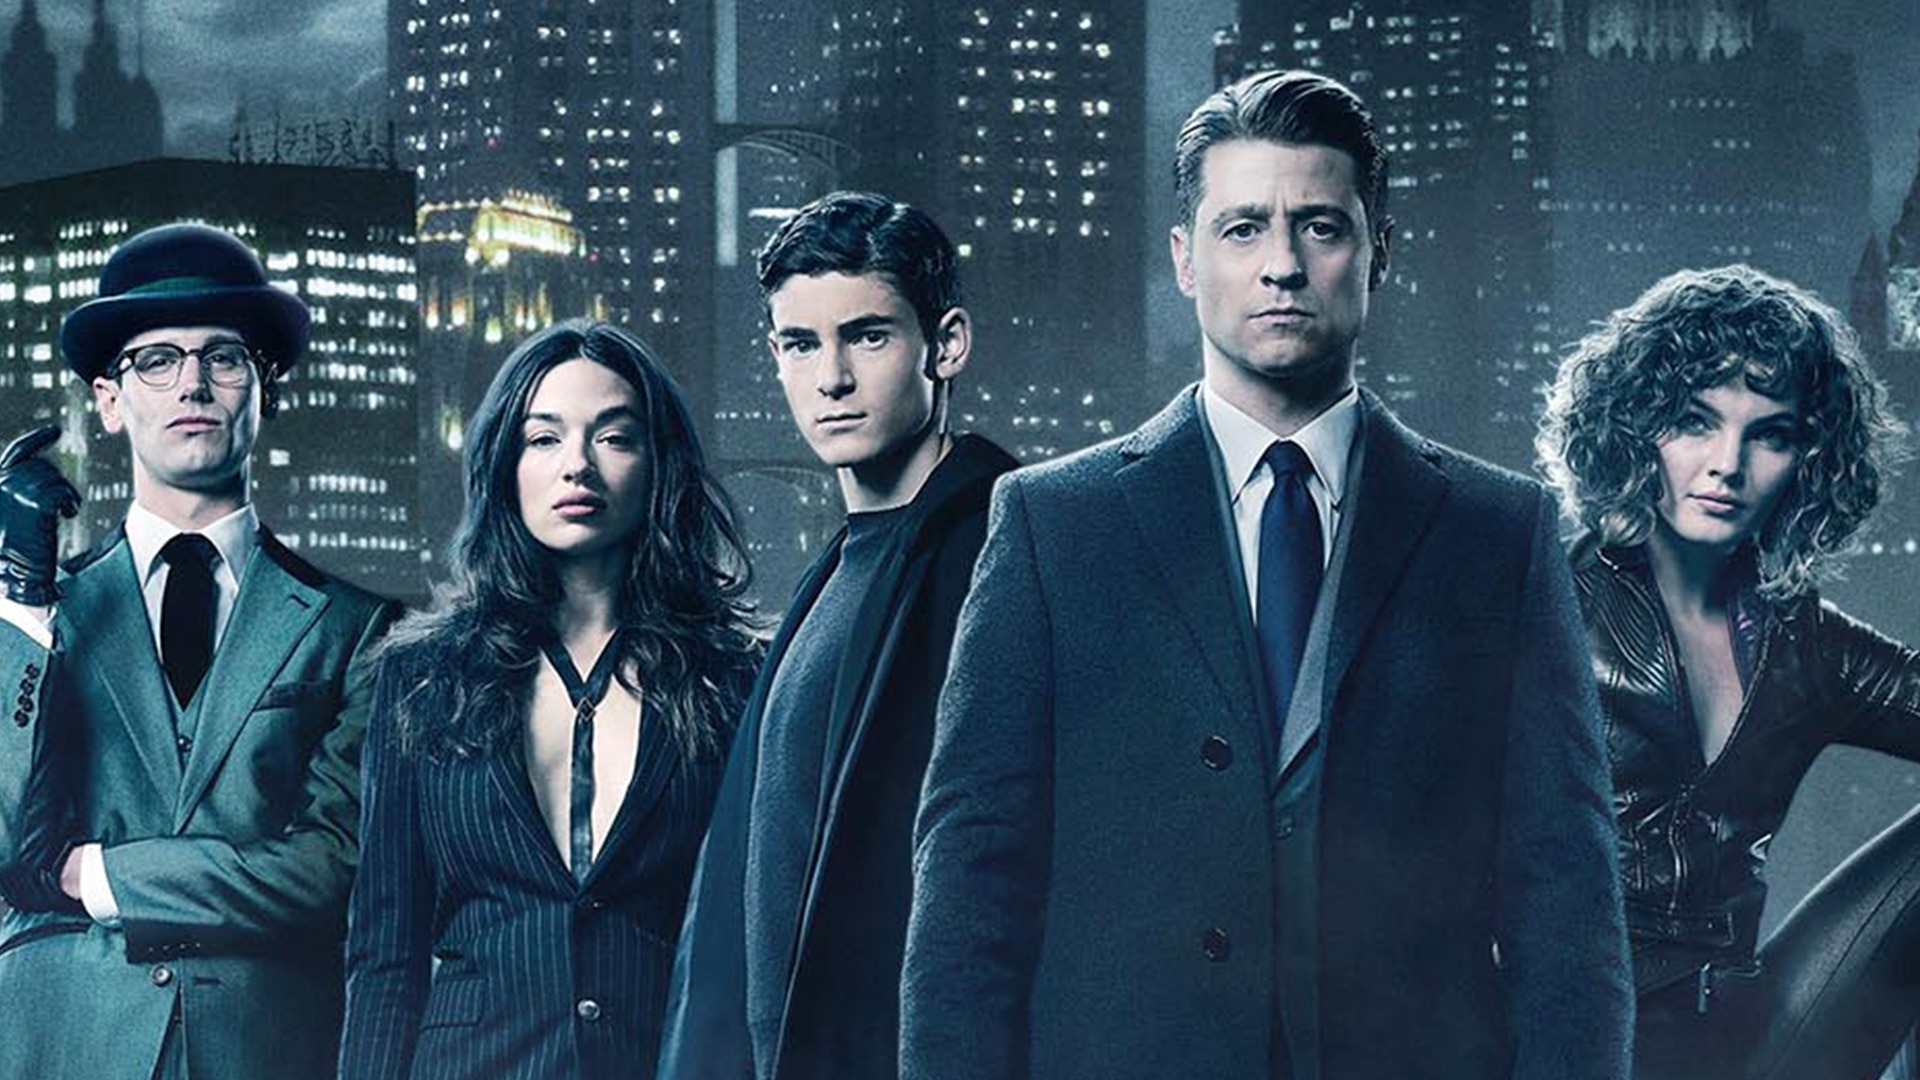 Gotham is coming to an end with this season